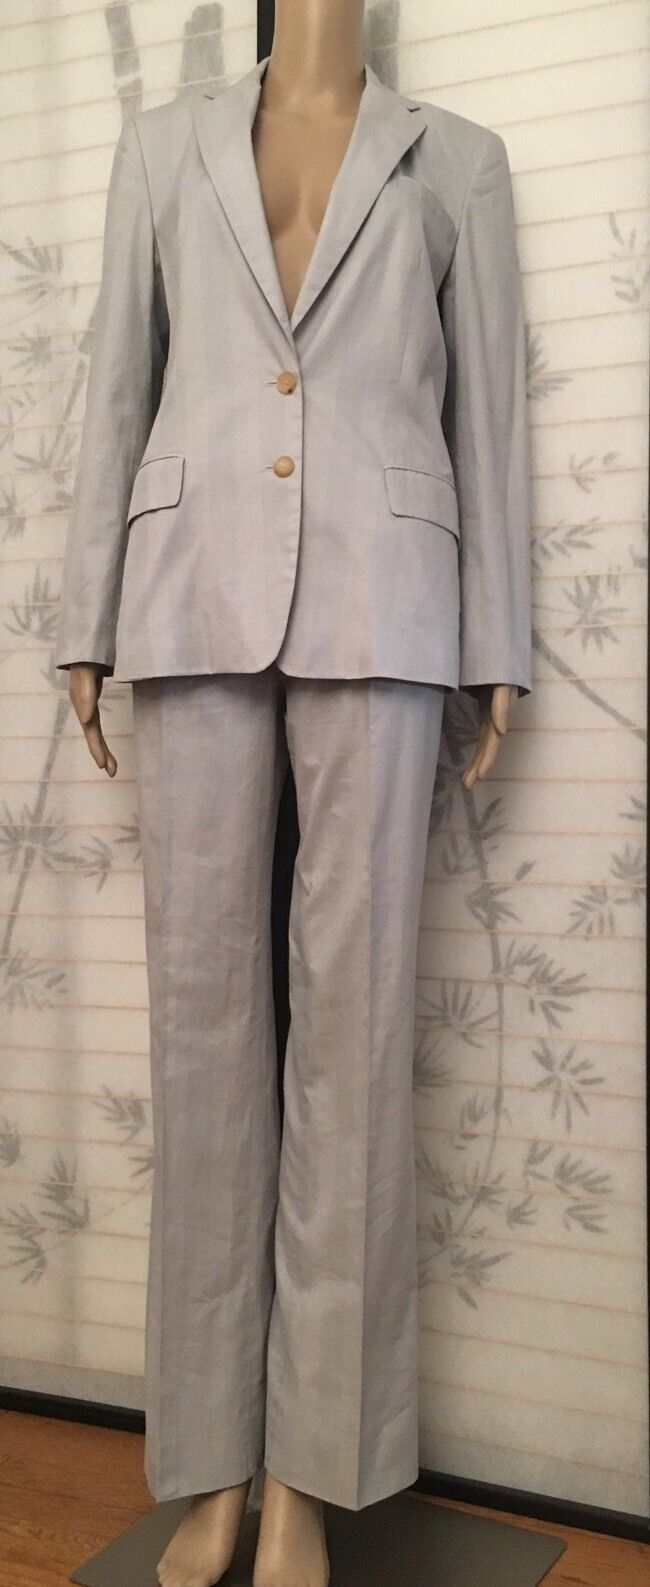 Nicole Farhi Cotton White   bluee Stripe Pants Suite Preppy Look SZ Us 6